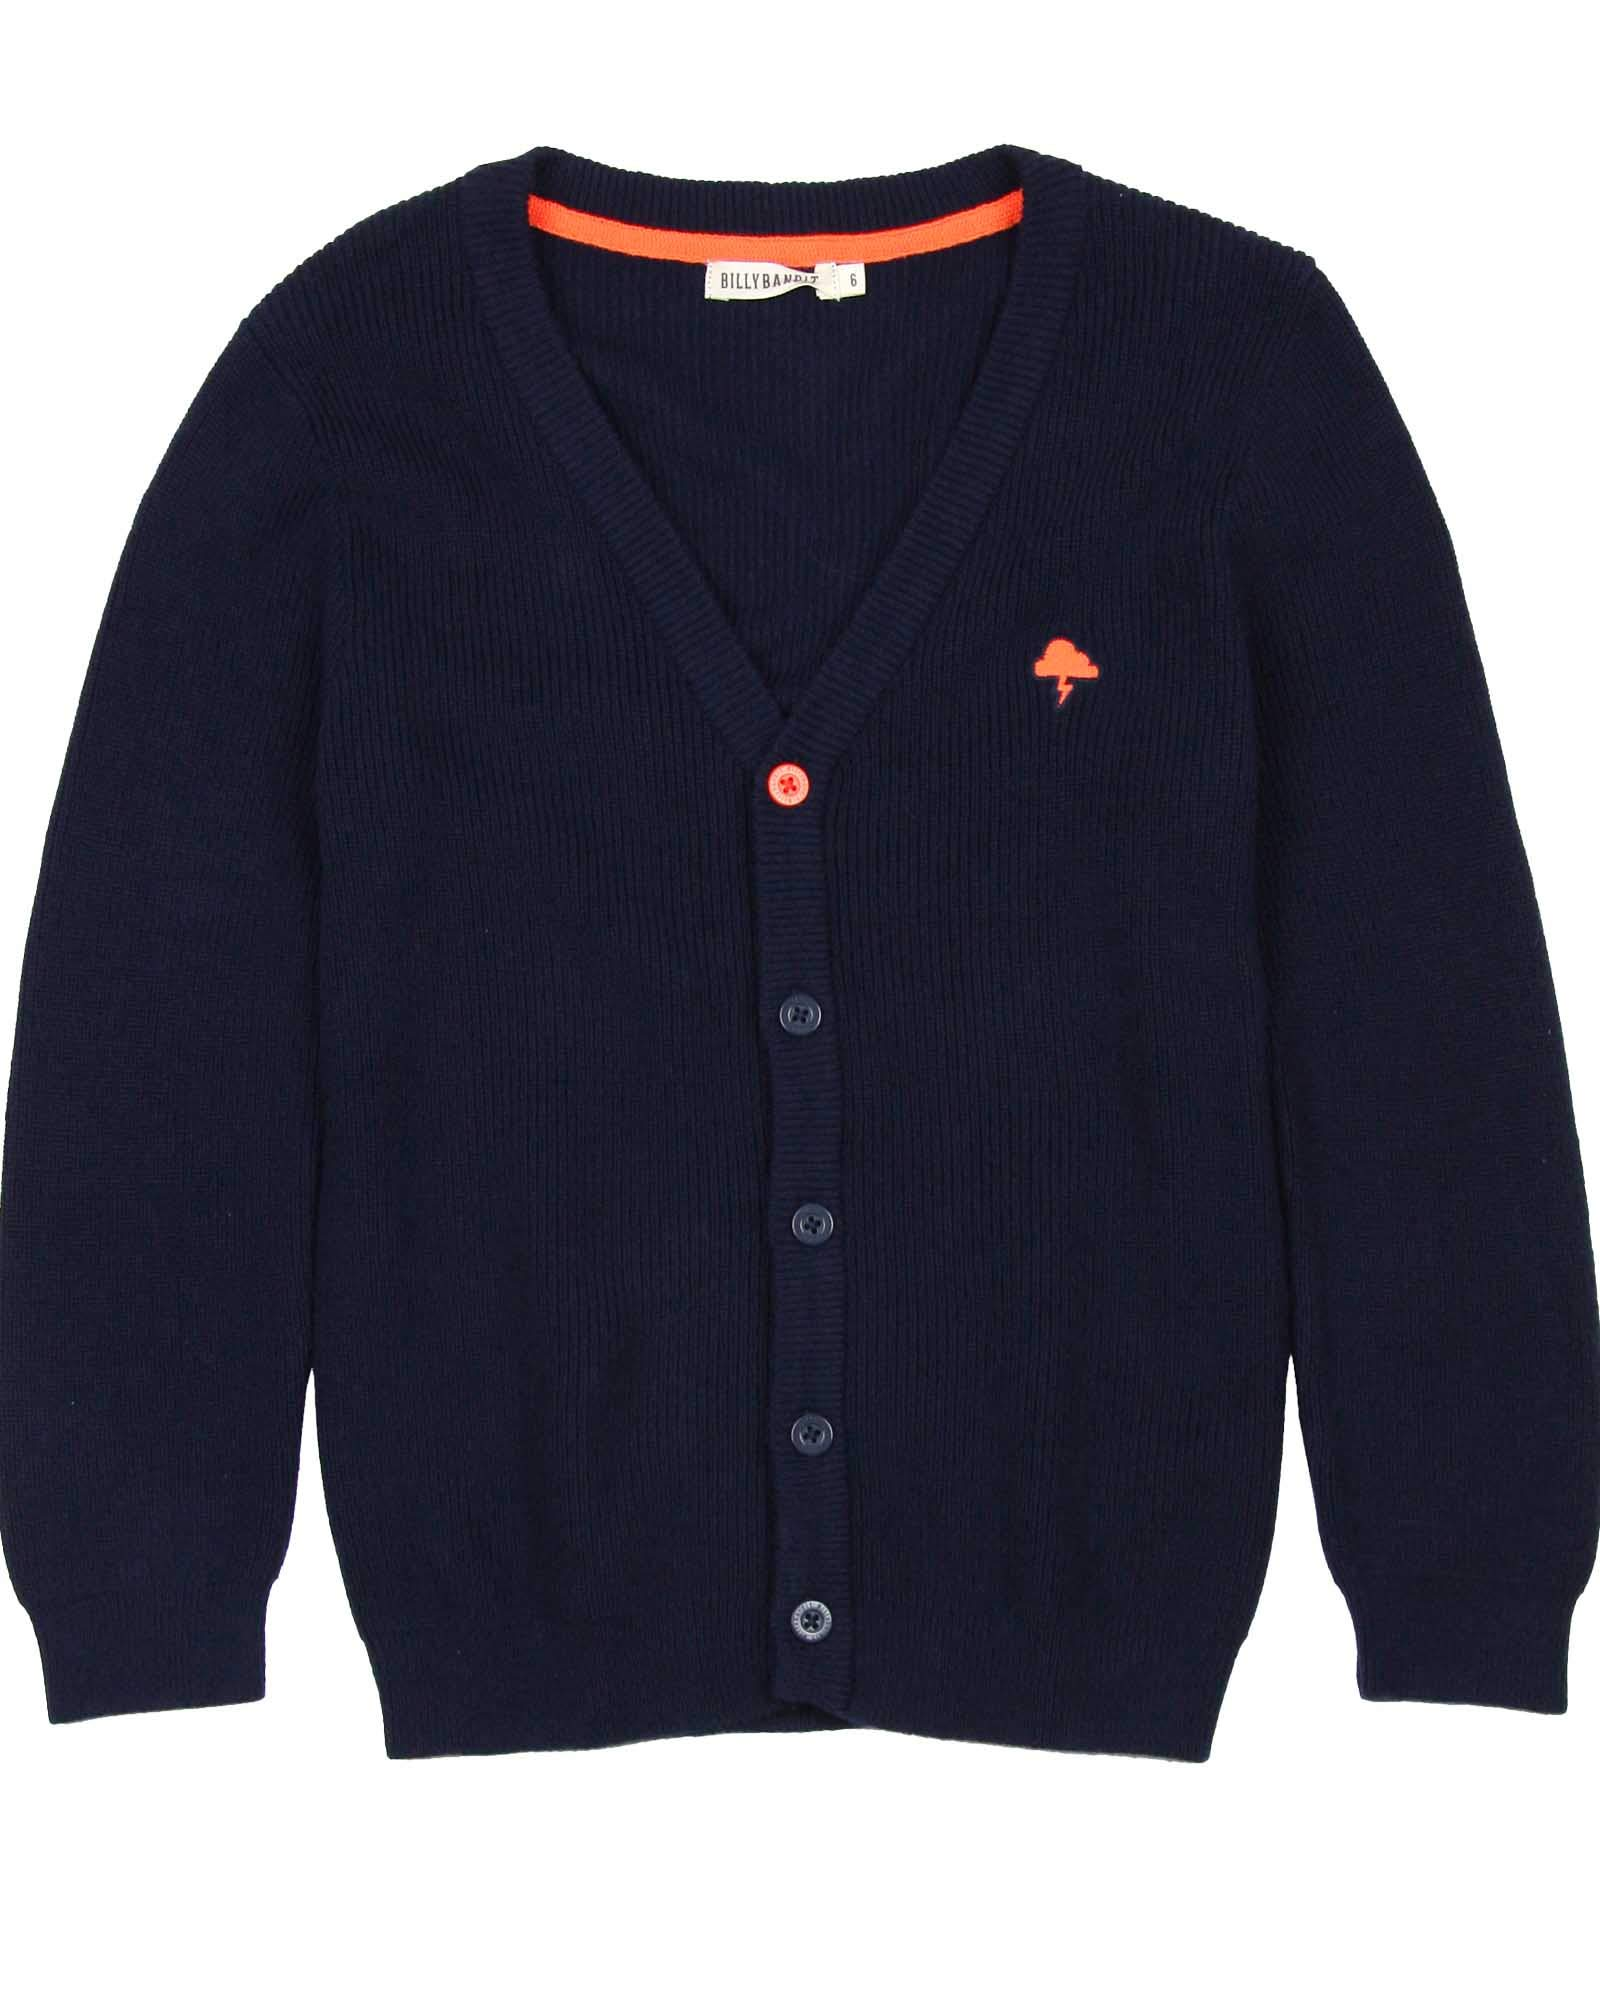 Billybandit Boys Knit Cardigan, Sizes 3-10 - 3 Navy